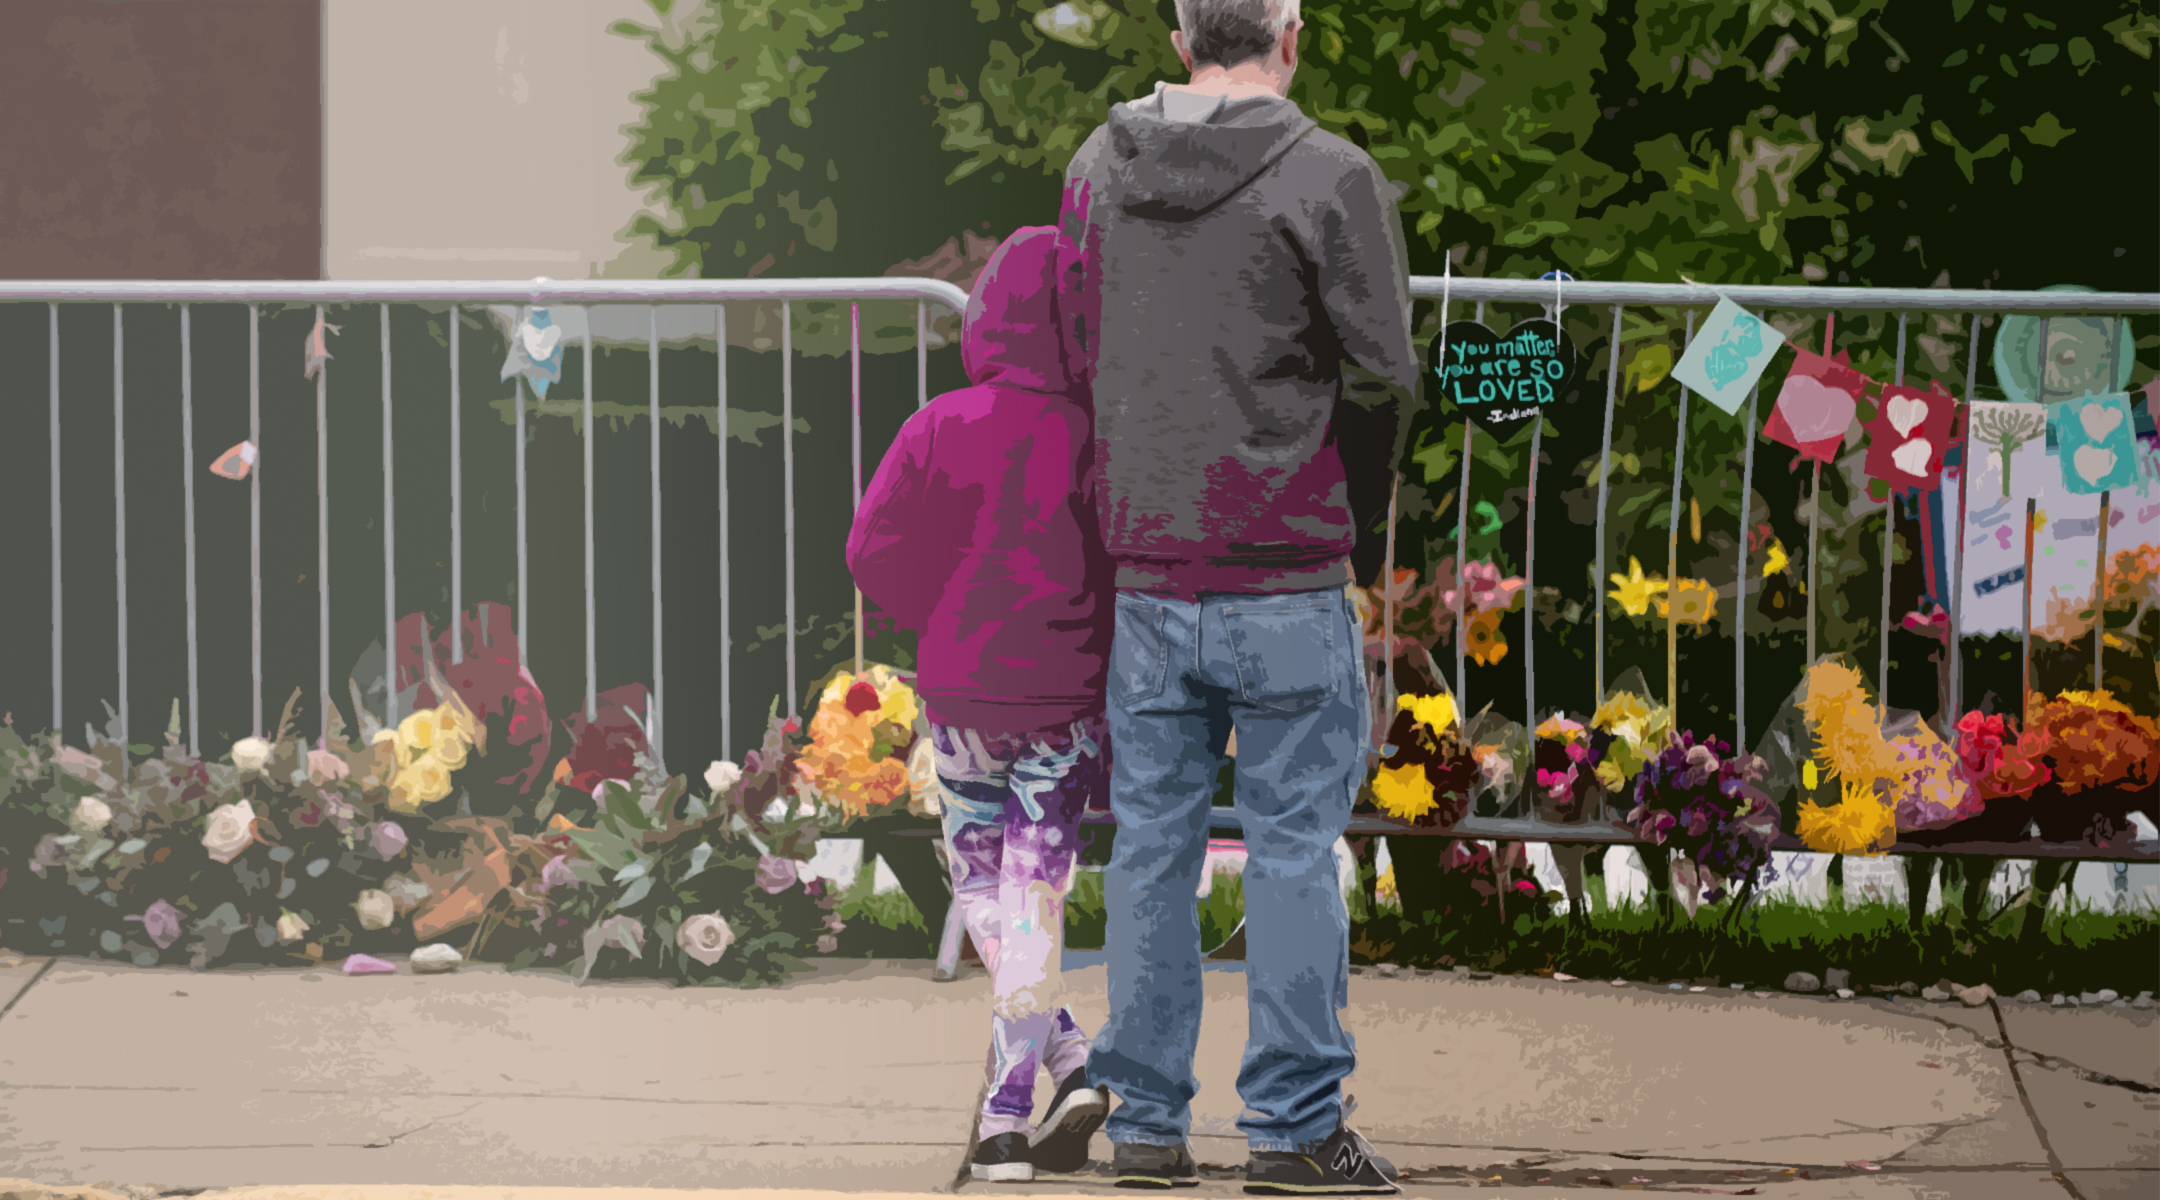 Visitors look at items well-wishers have left behind along the fence at the Tree of Life Synagogue on the 1st Anniversary of the attack on October 27, 2019 in Pittsburgh, Pennsylvania. (Photo/JTA-Jeff Swensen-Getty Images)